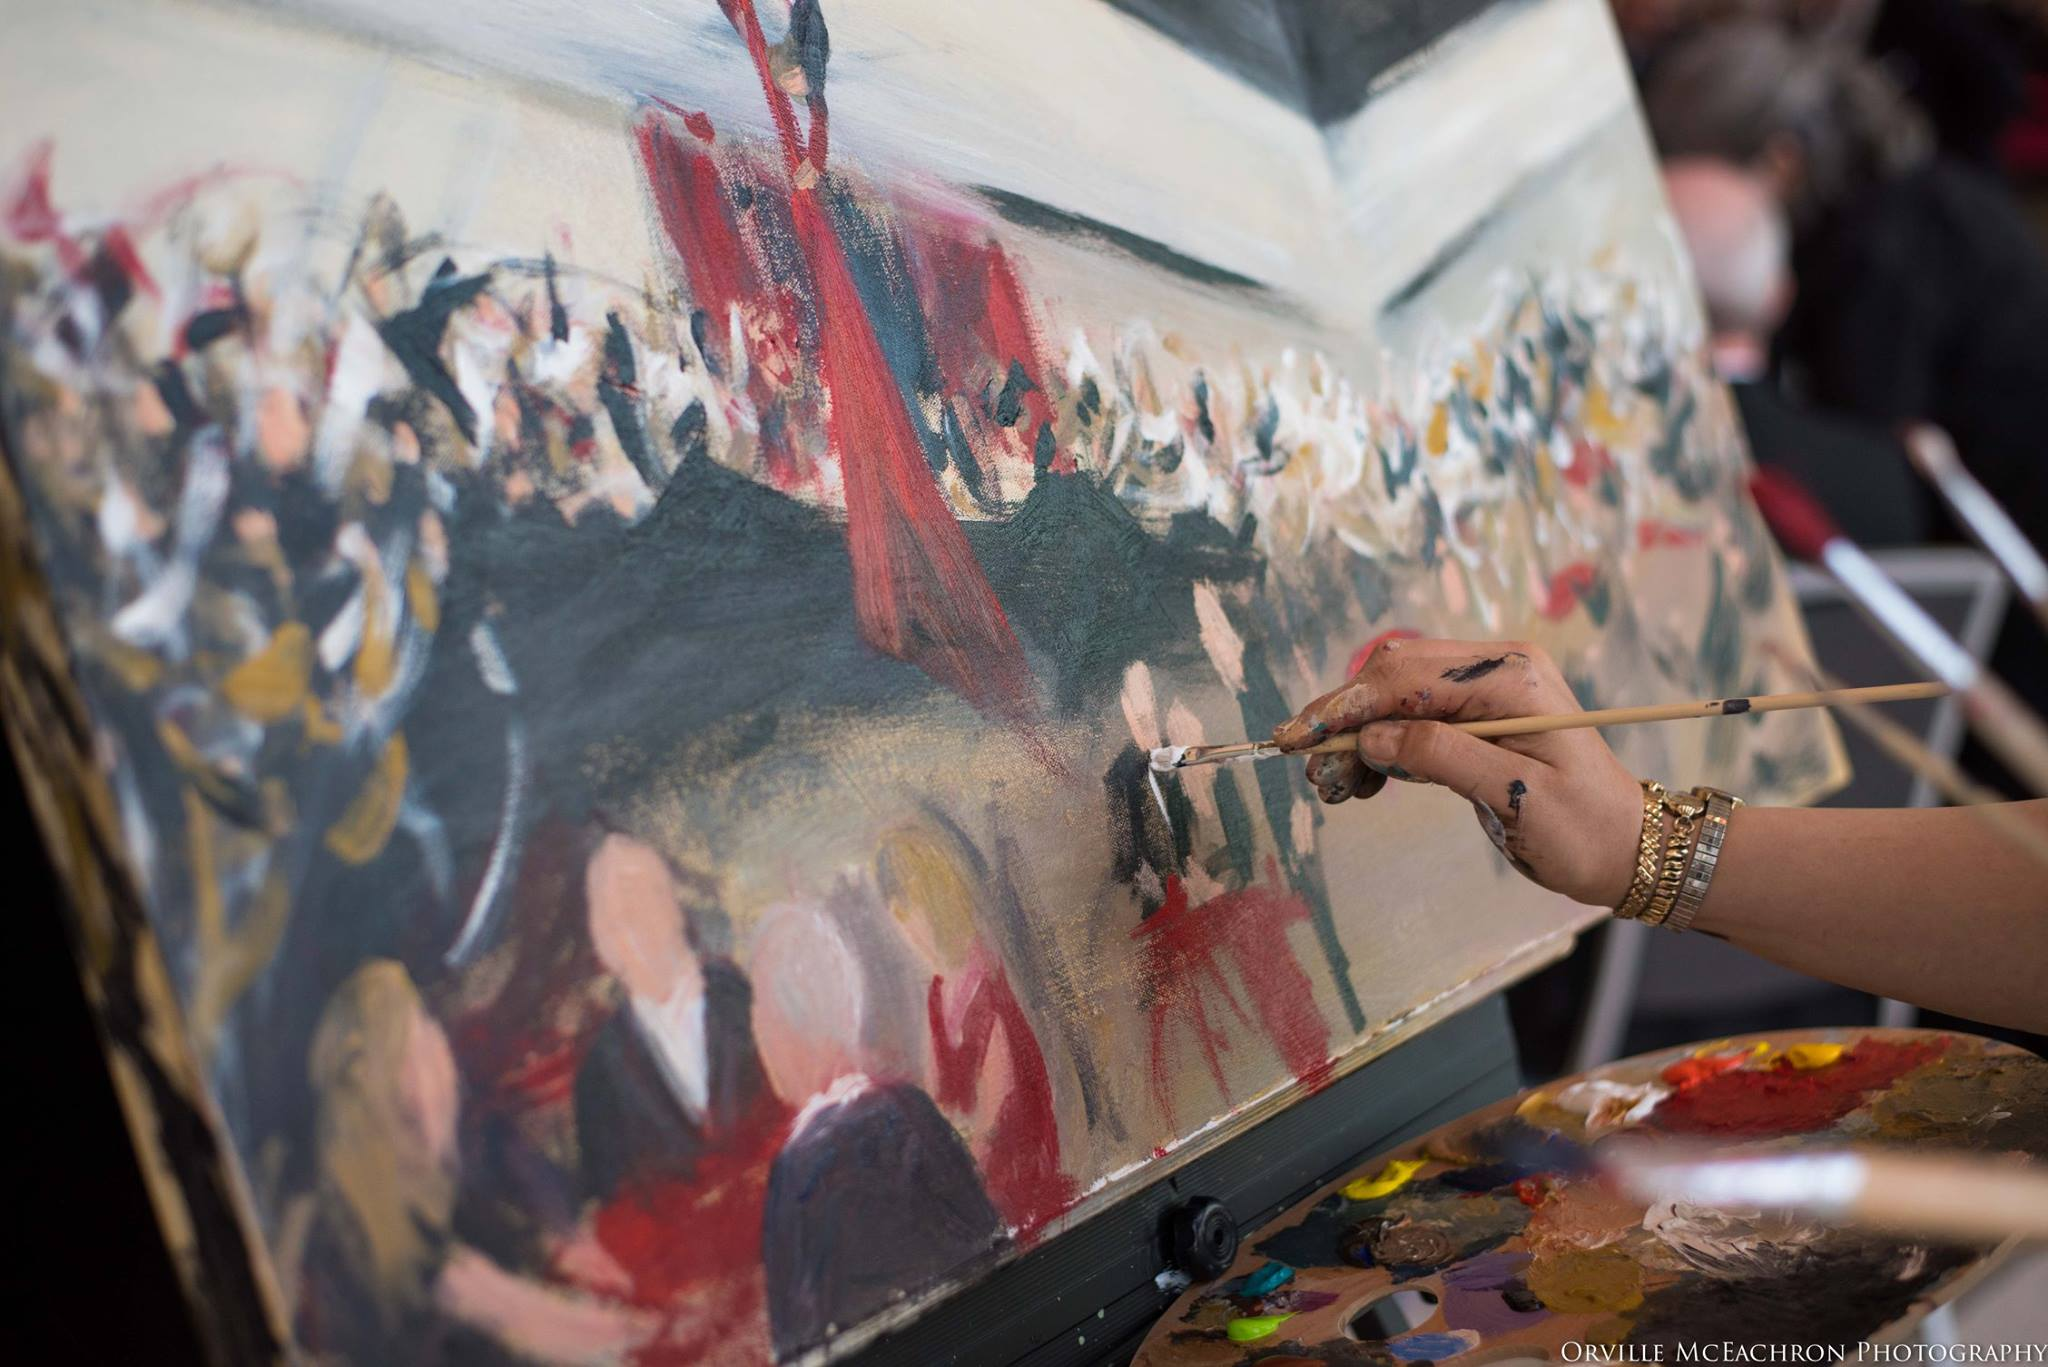 Live event painting in action